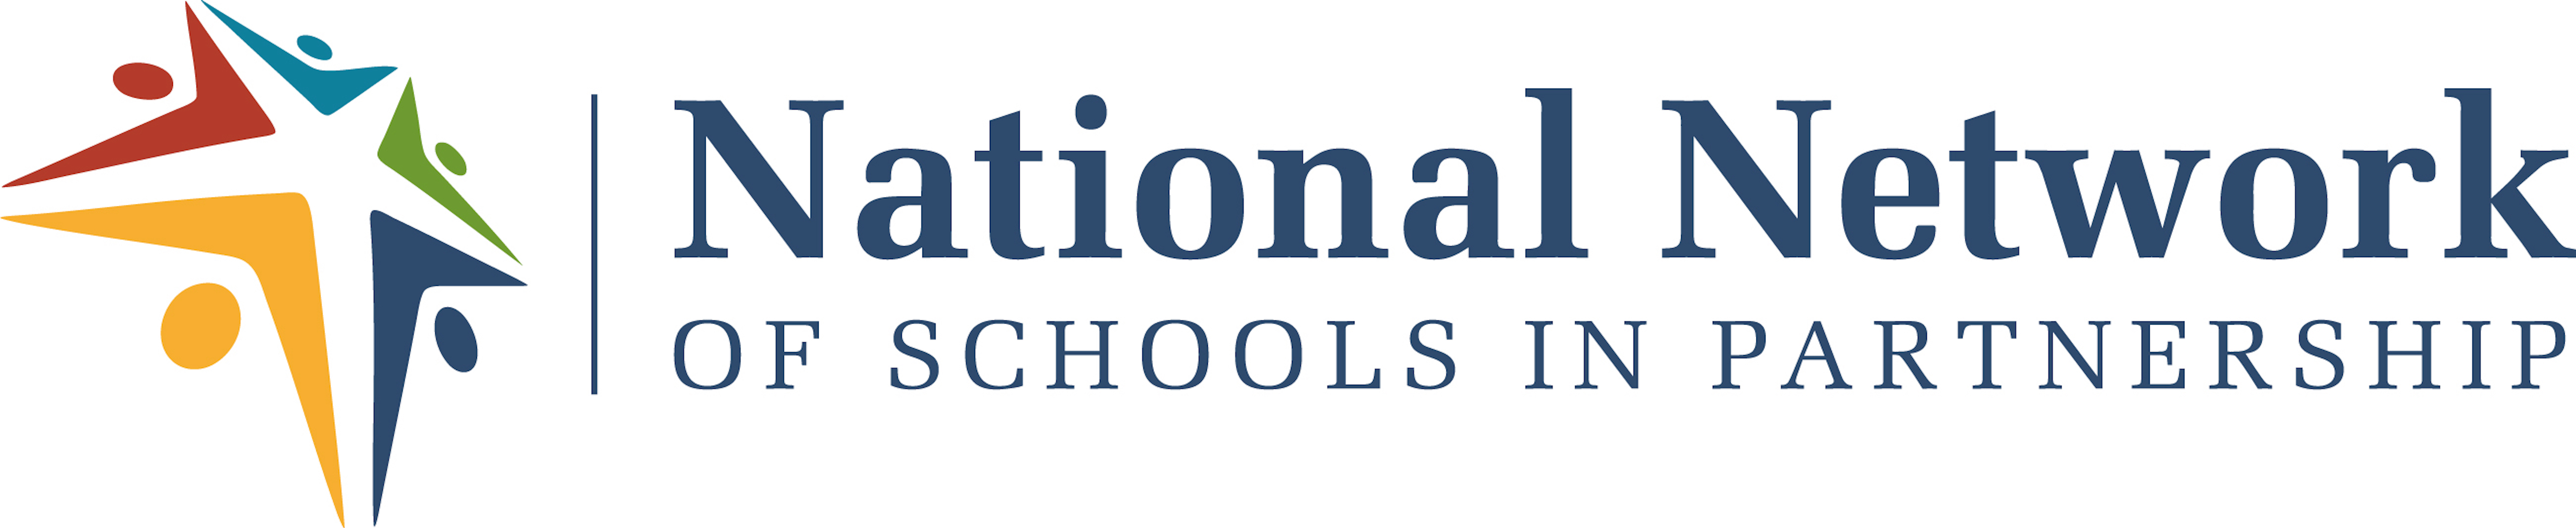 National Network of Schools in Partnership